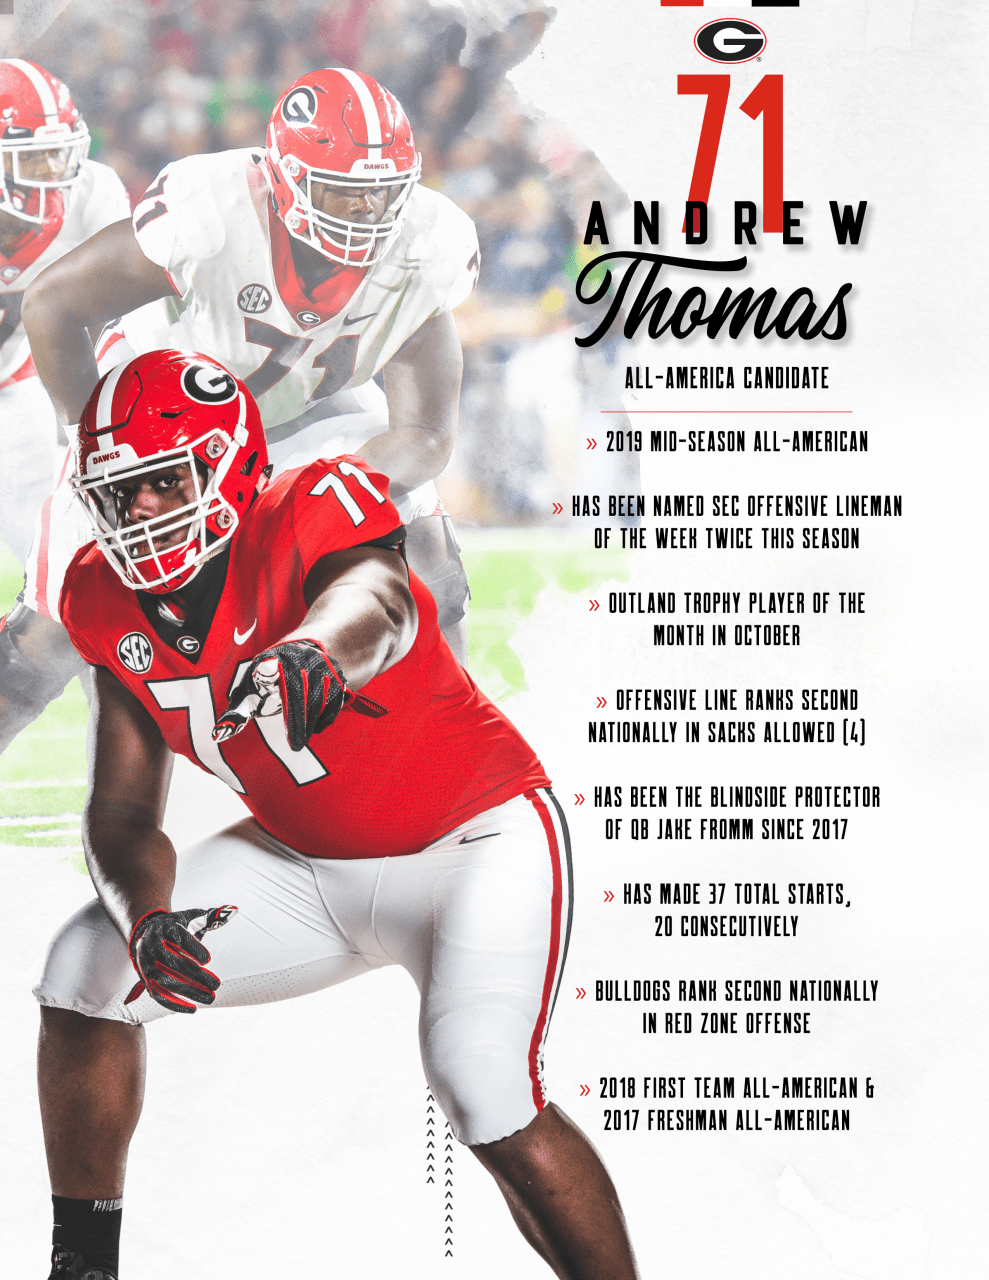 Andrew Thomas burst on the scene at UGA to earn Freshman